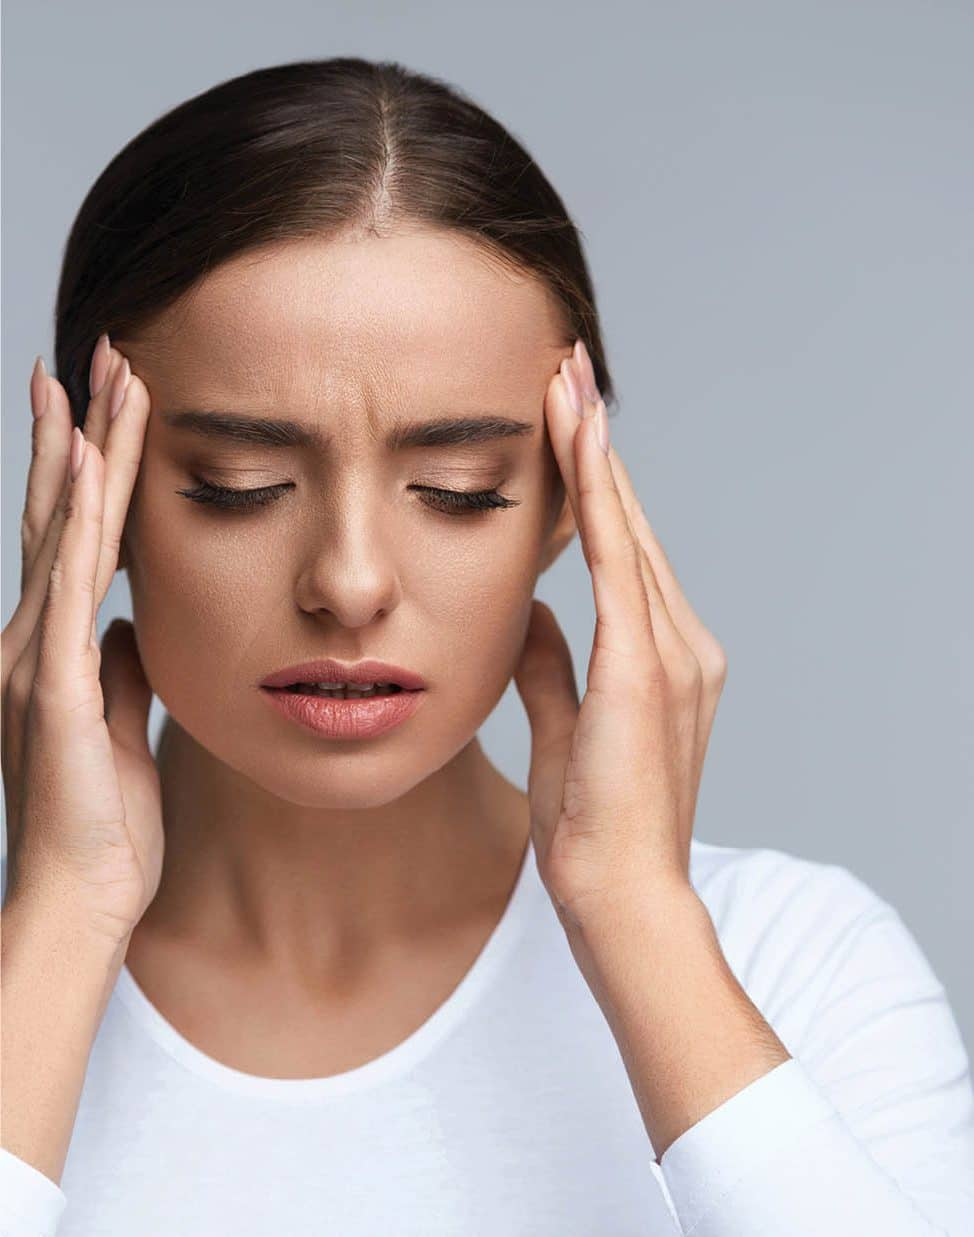 The Truth About Botox and Migraines - Living Magazine